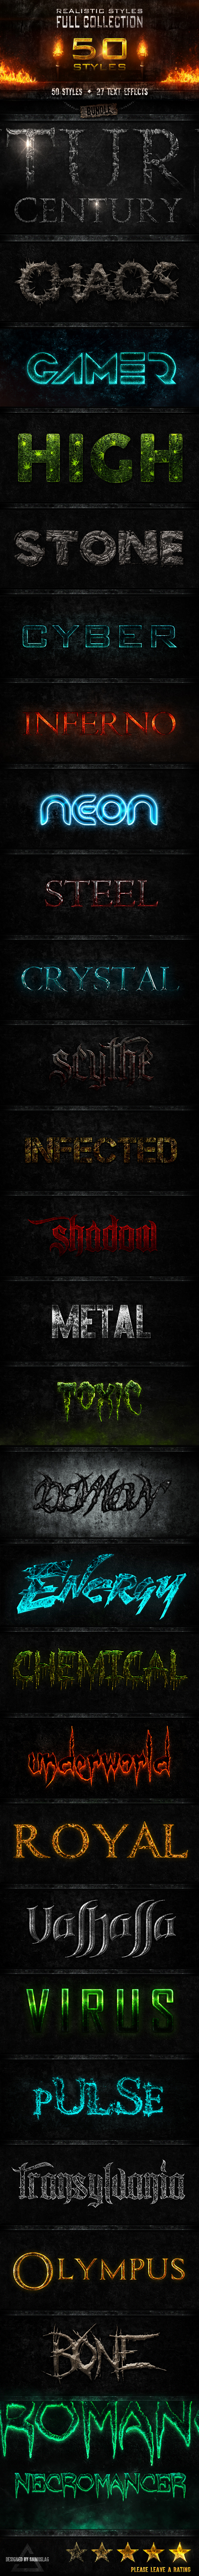 Realistic Styles BUNDLE - Text Effects Styles